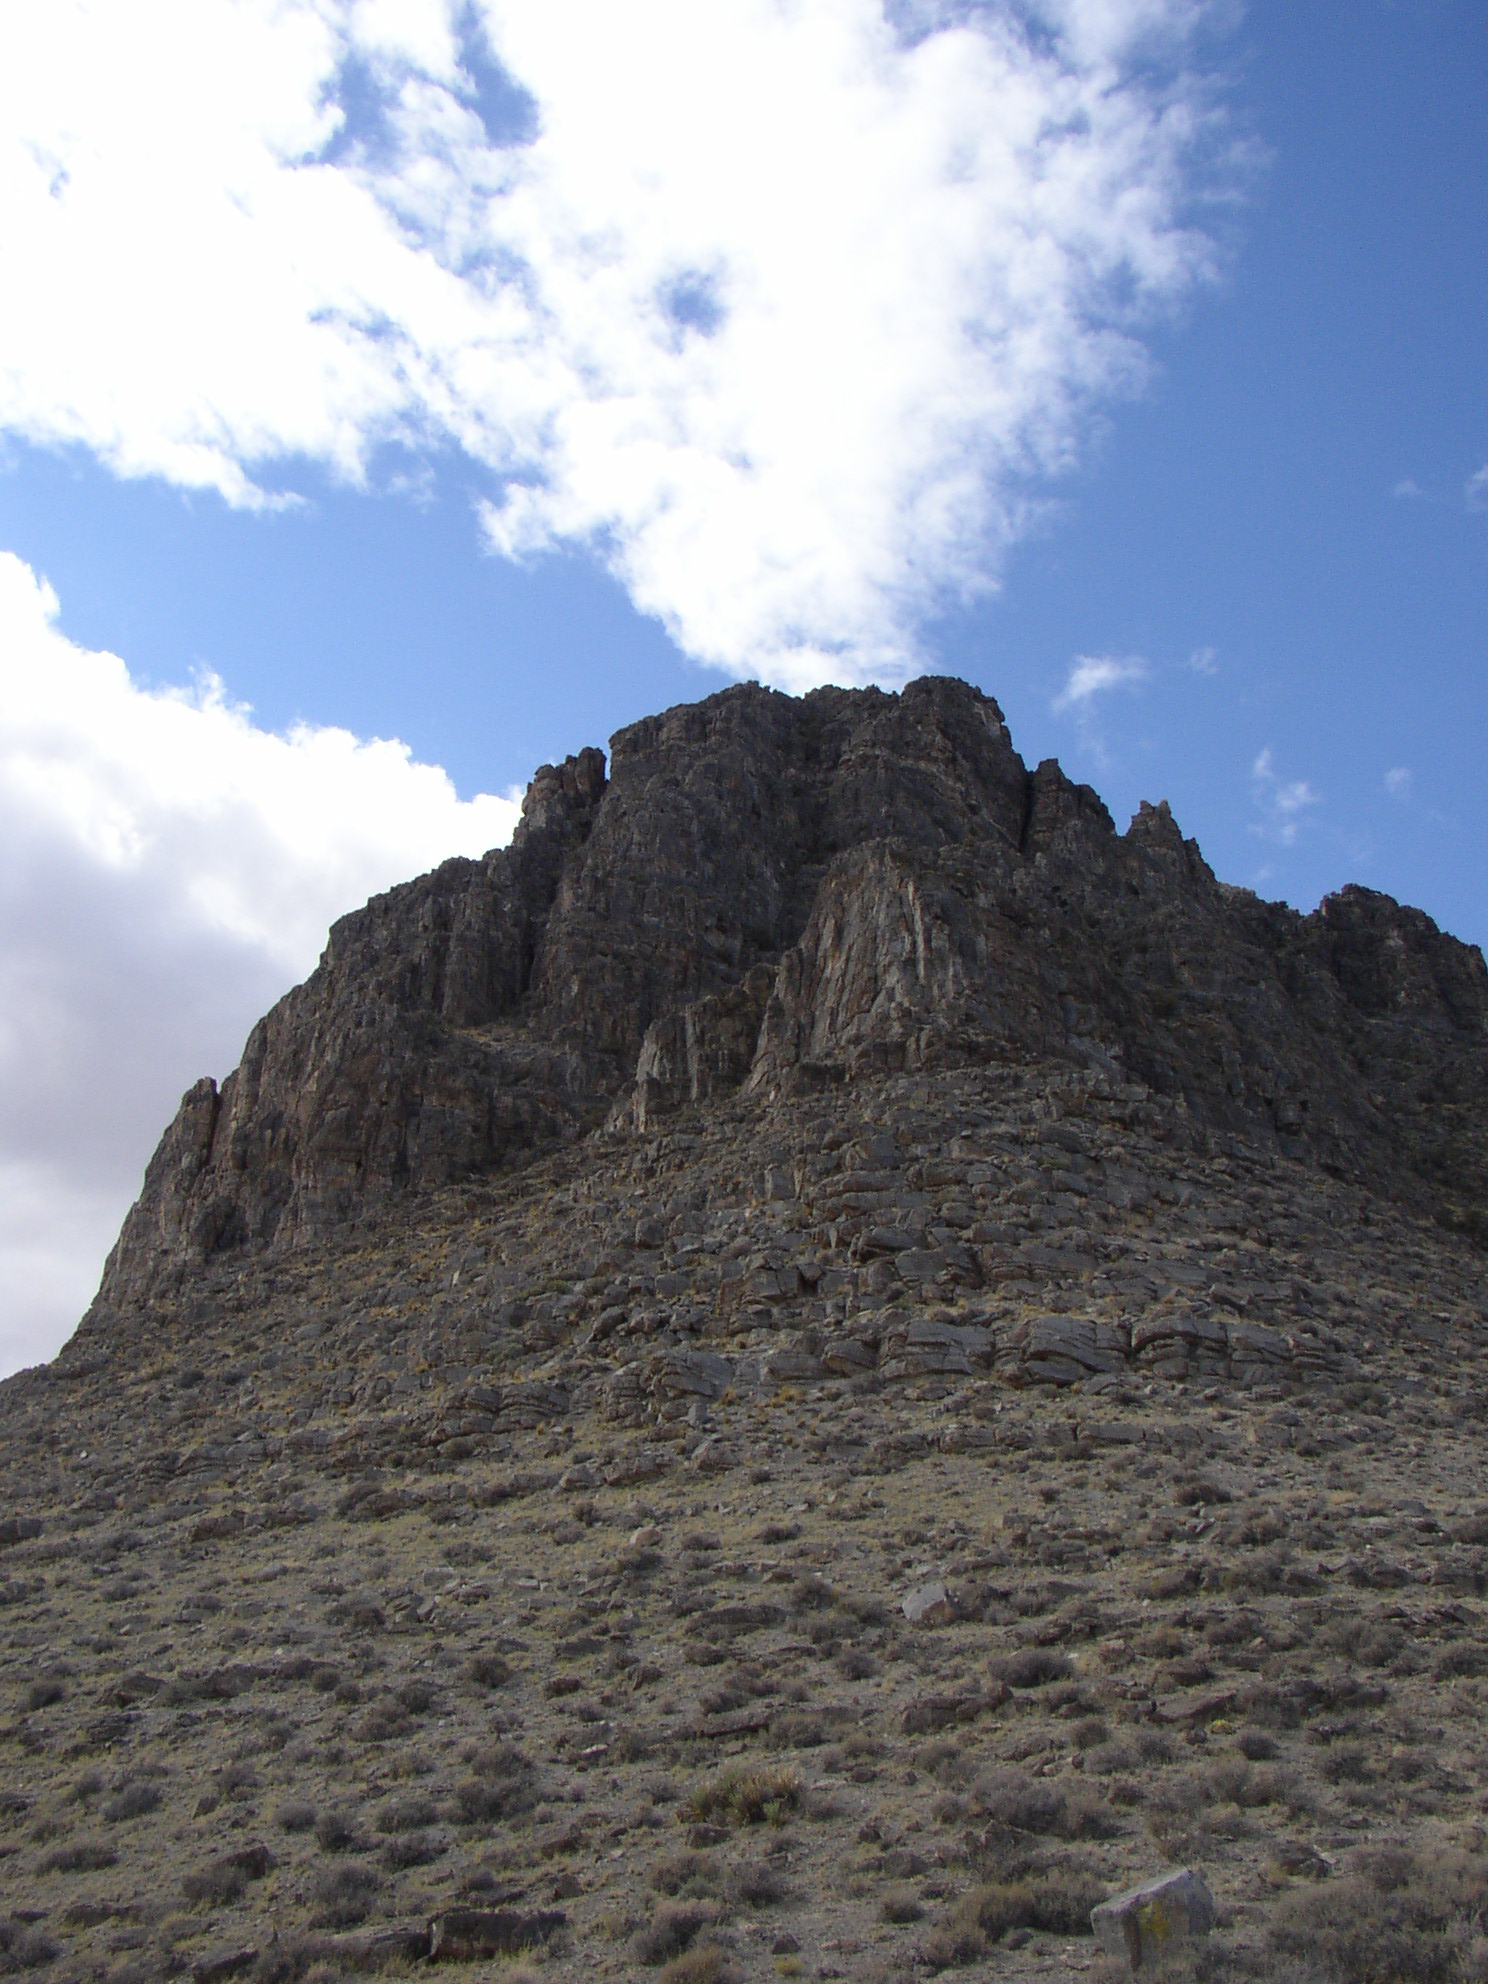 Photo of the Notch Peak Formation, in Lawsons Cove, Utah.